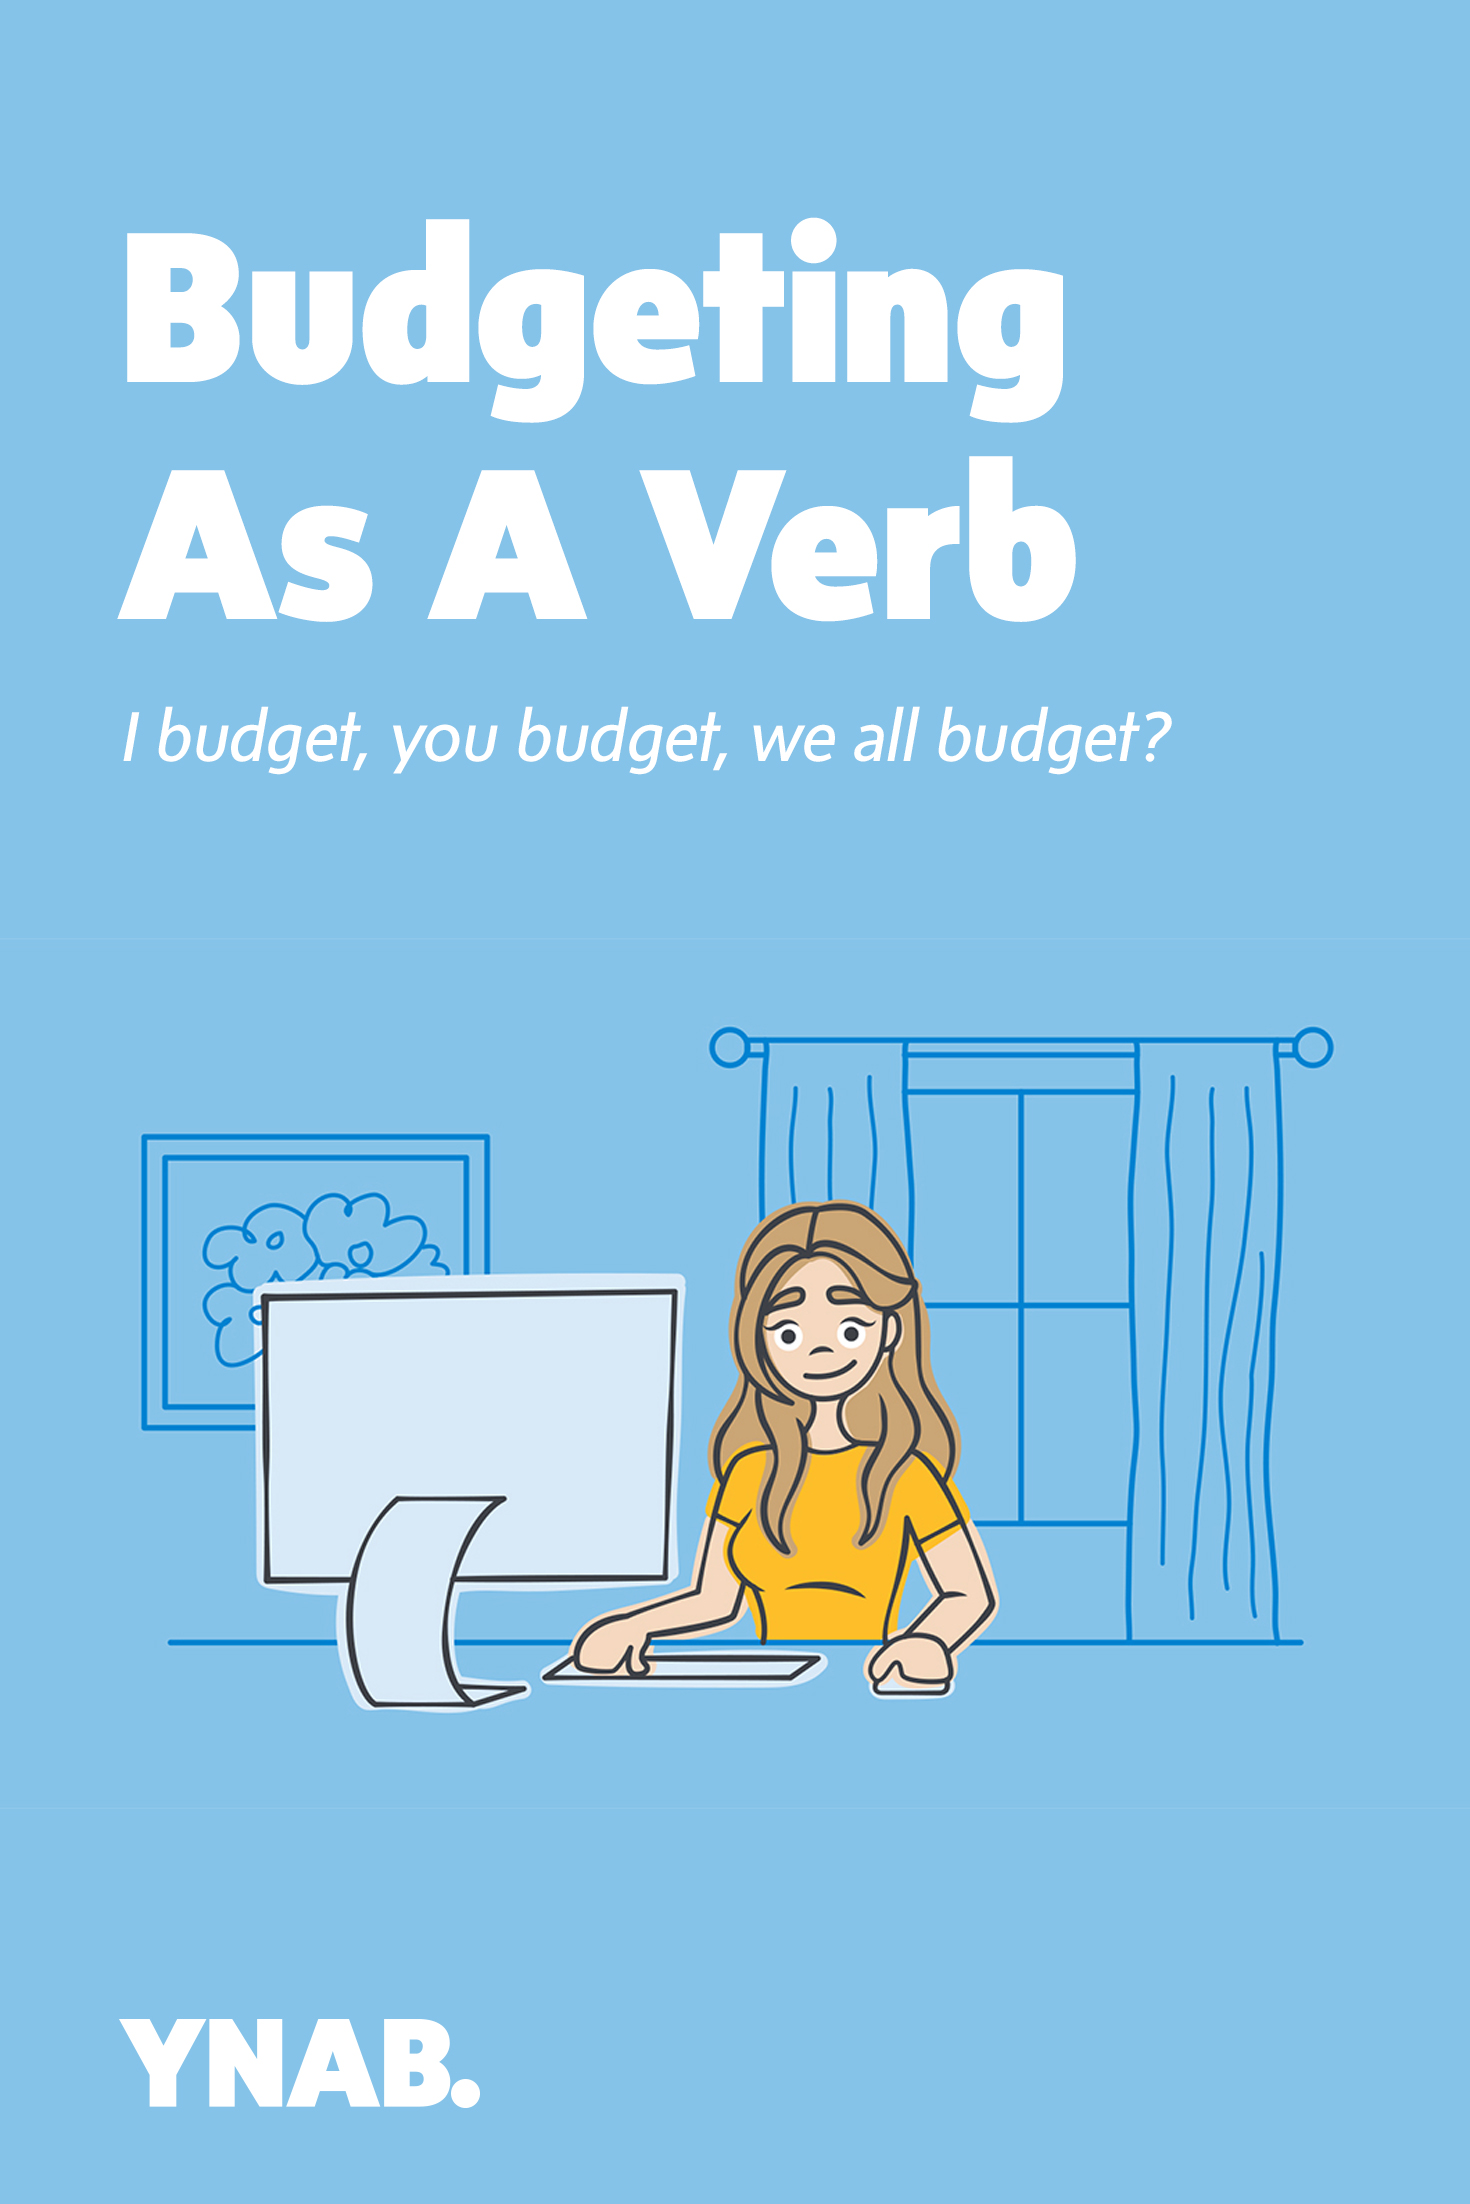 Budgeting Requires Action & Effort. You don't need a budget, you need to budget. I budget, you budget, we all budget? | YNAB